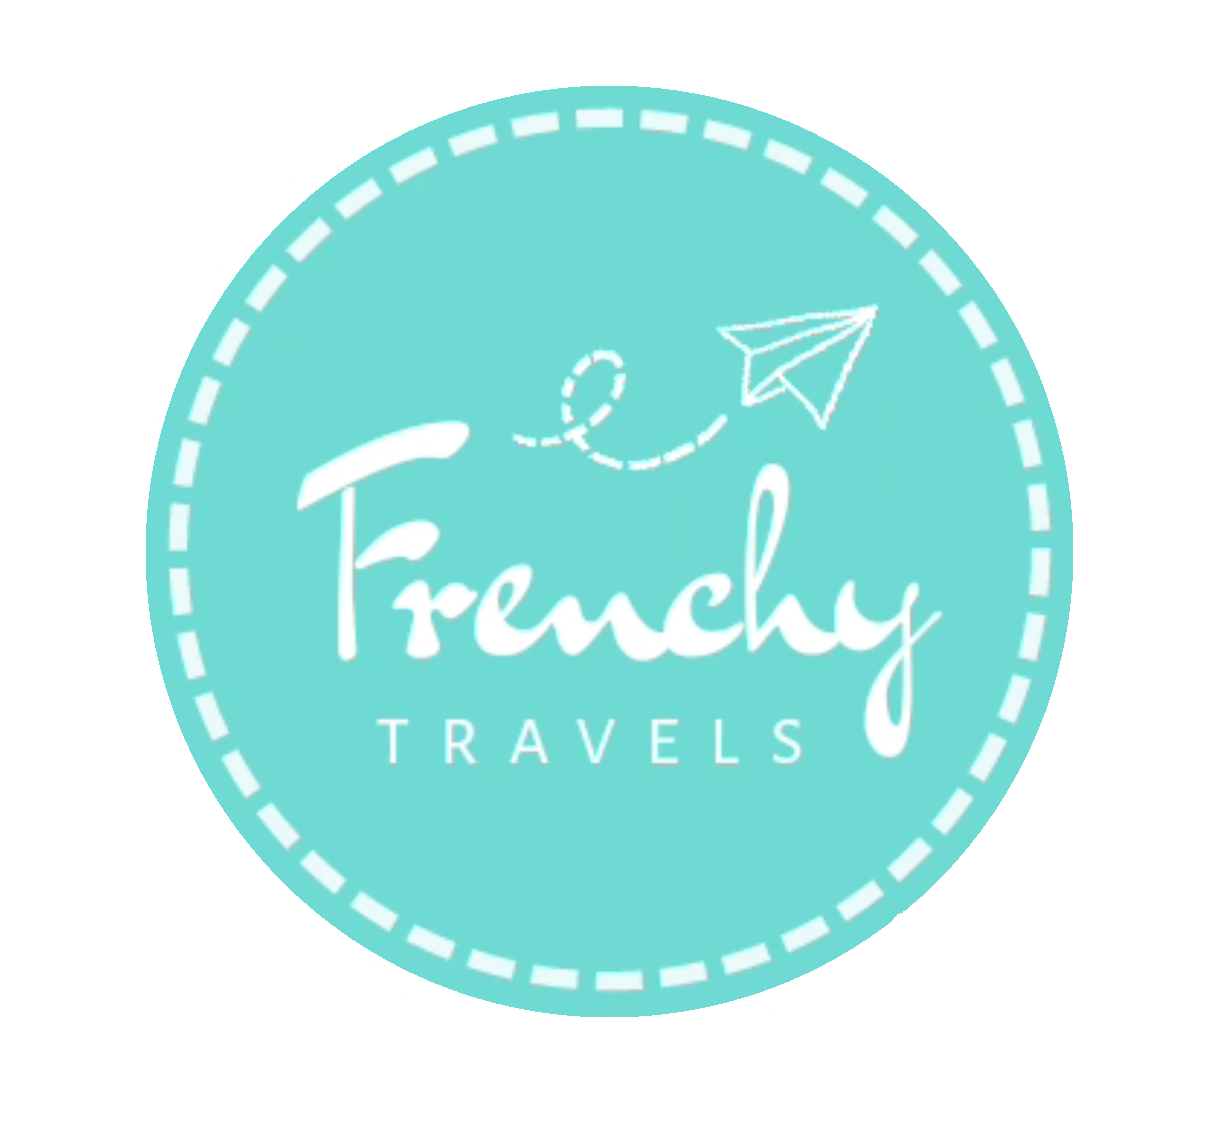 Frenchy Travels - the next adventure awaits